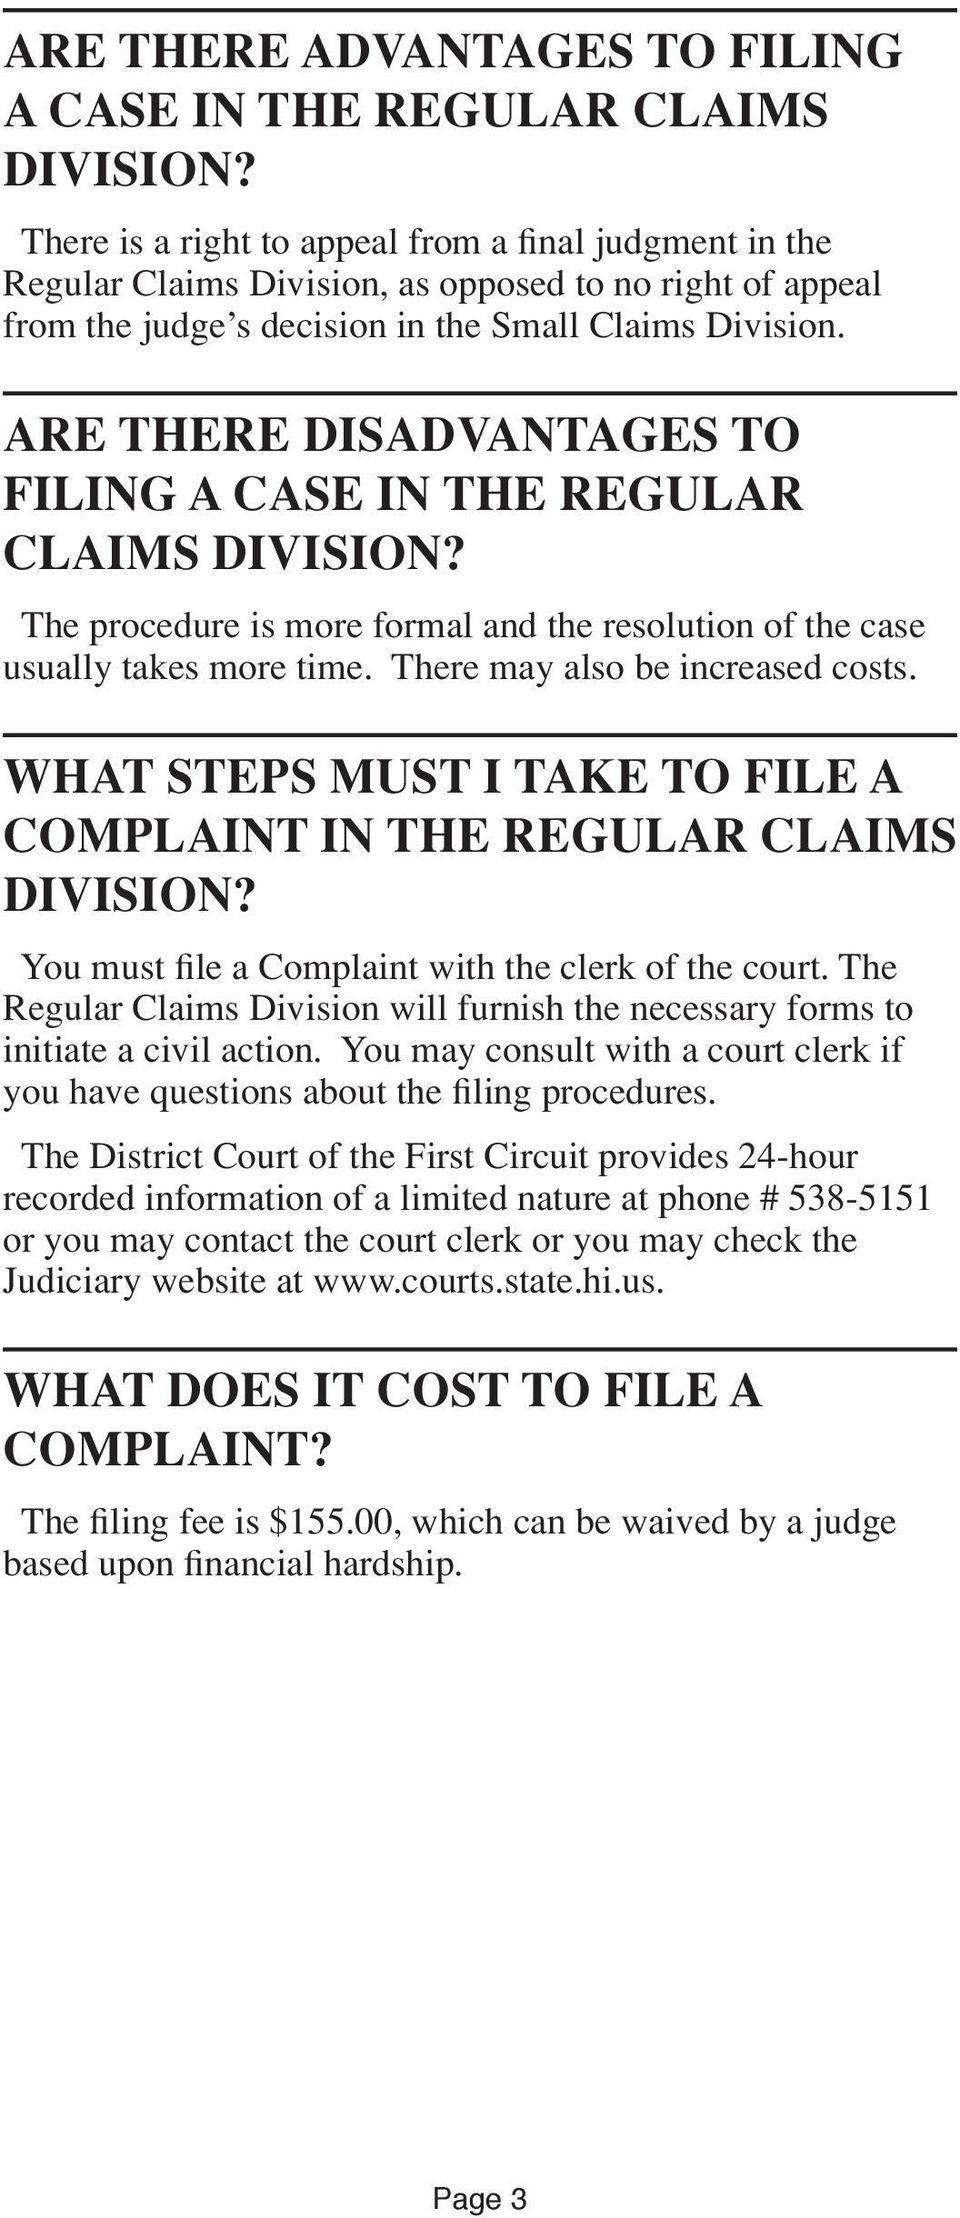 ARE THERE DISADVANTAGES TO FILING A CASE IN THE REGULAR CLAIMS DIVISION? The procedure is more formal and the resolution of the case usually takes more time. There may also be increased costs.